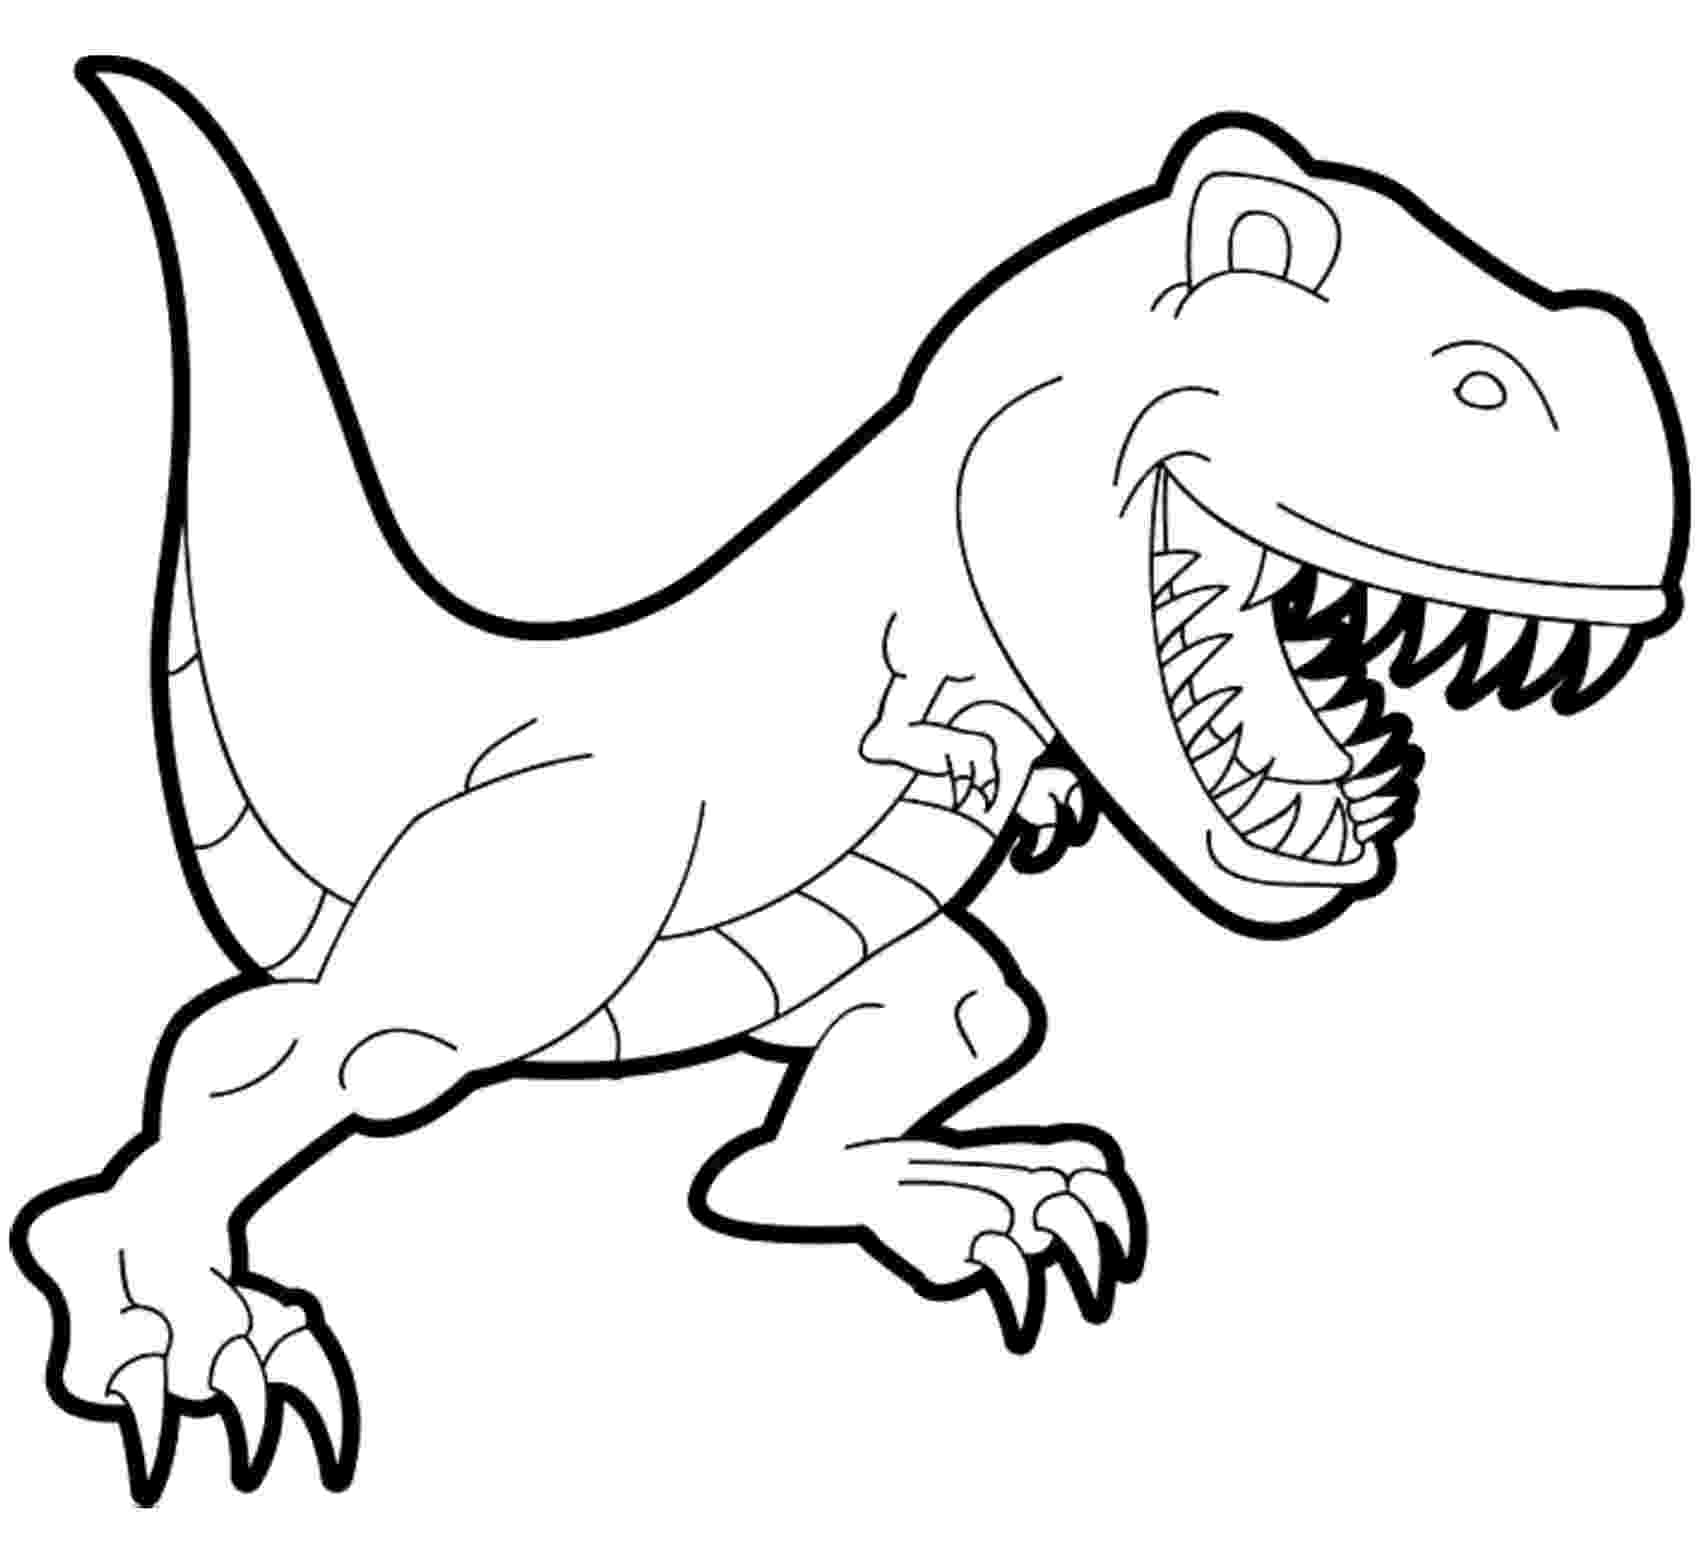 color dinosaur free printable dinosaur coloring pages for kids color dinosaur 1 2